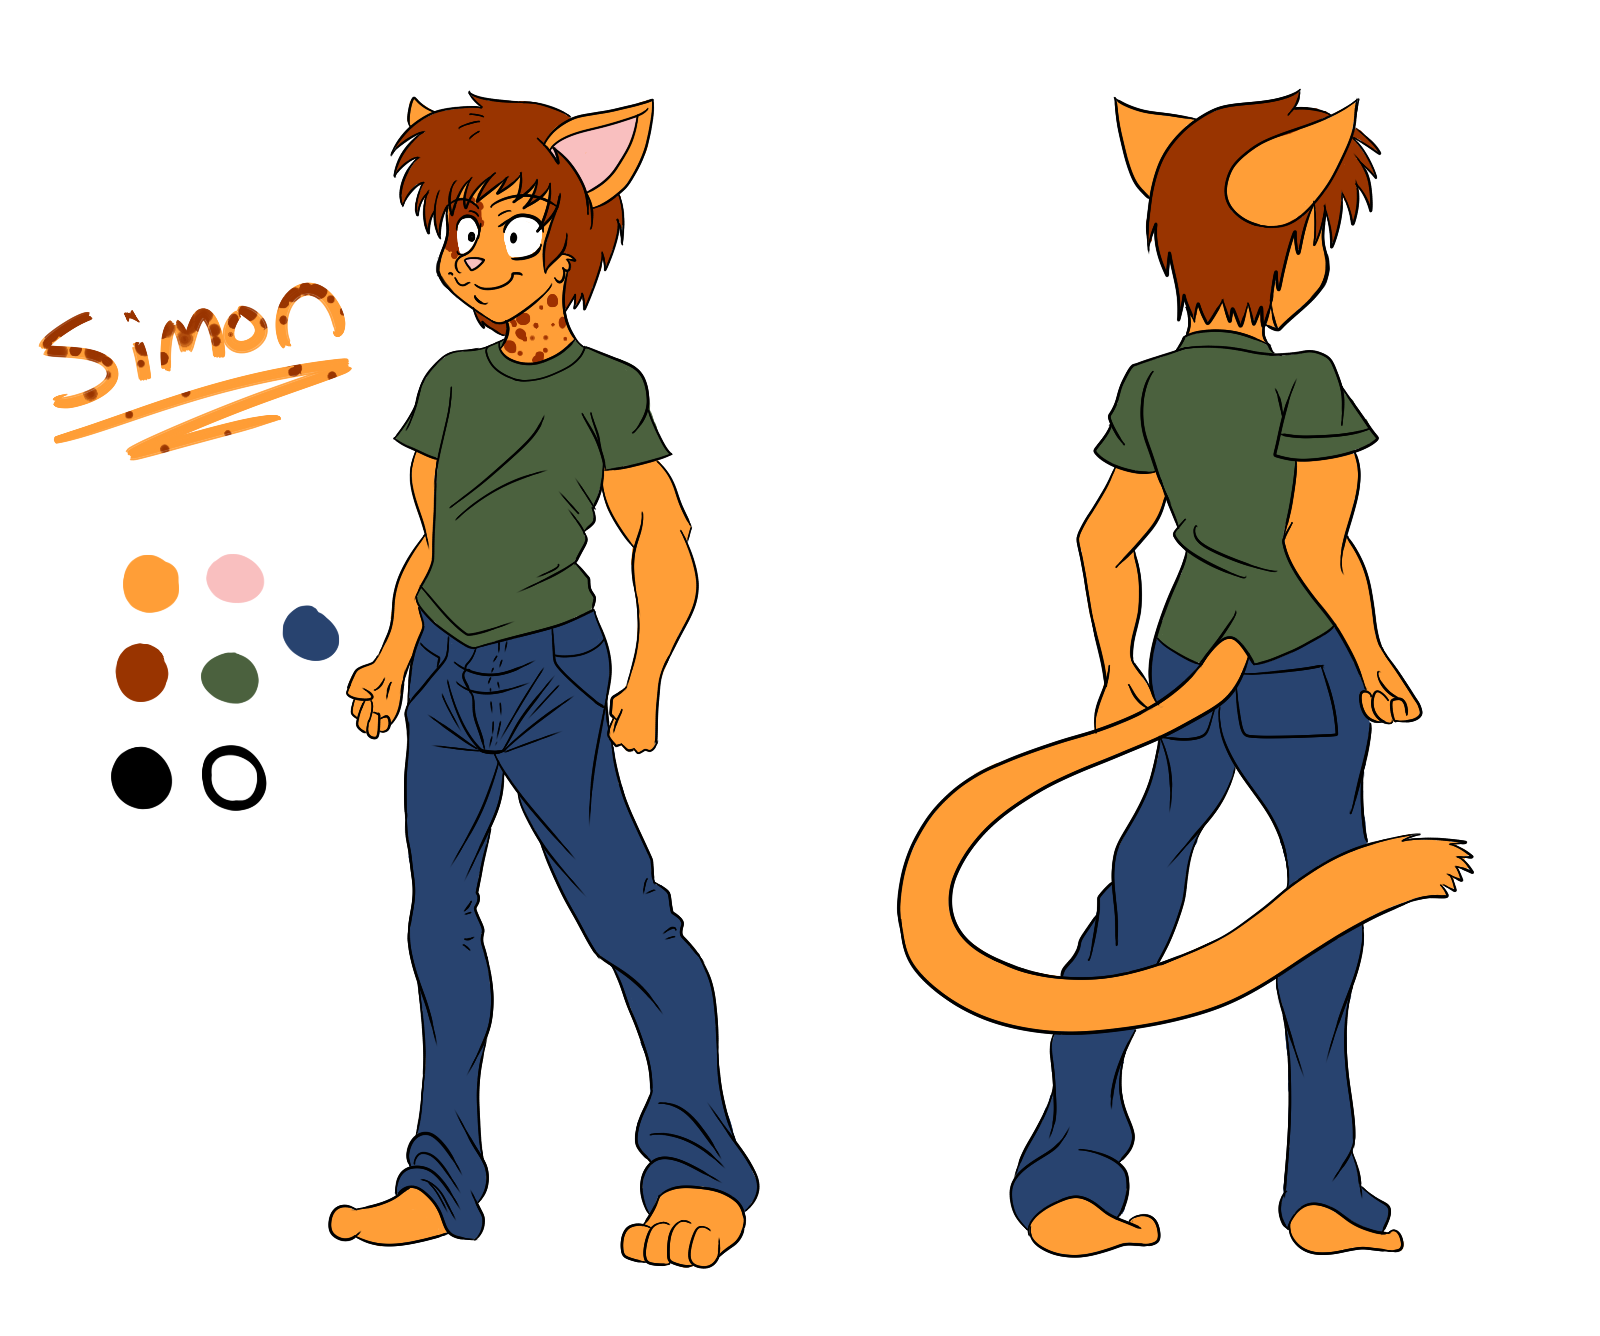 Simon Reference Sheet